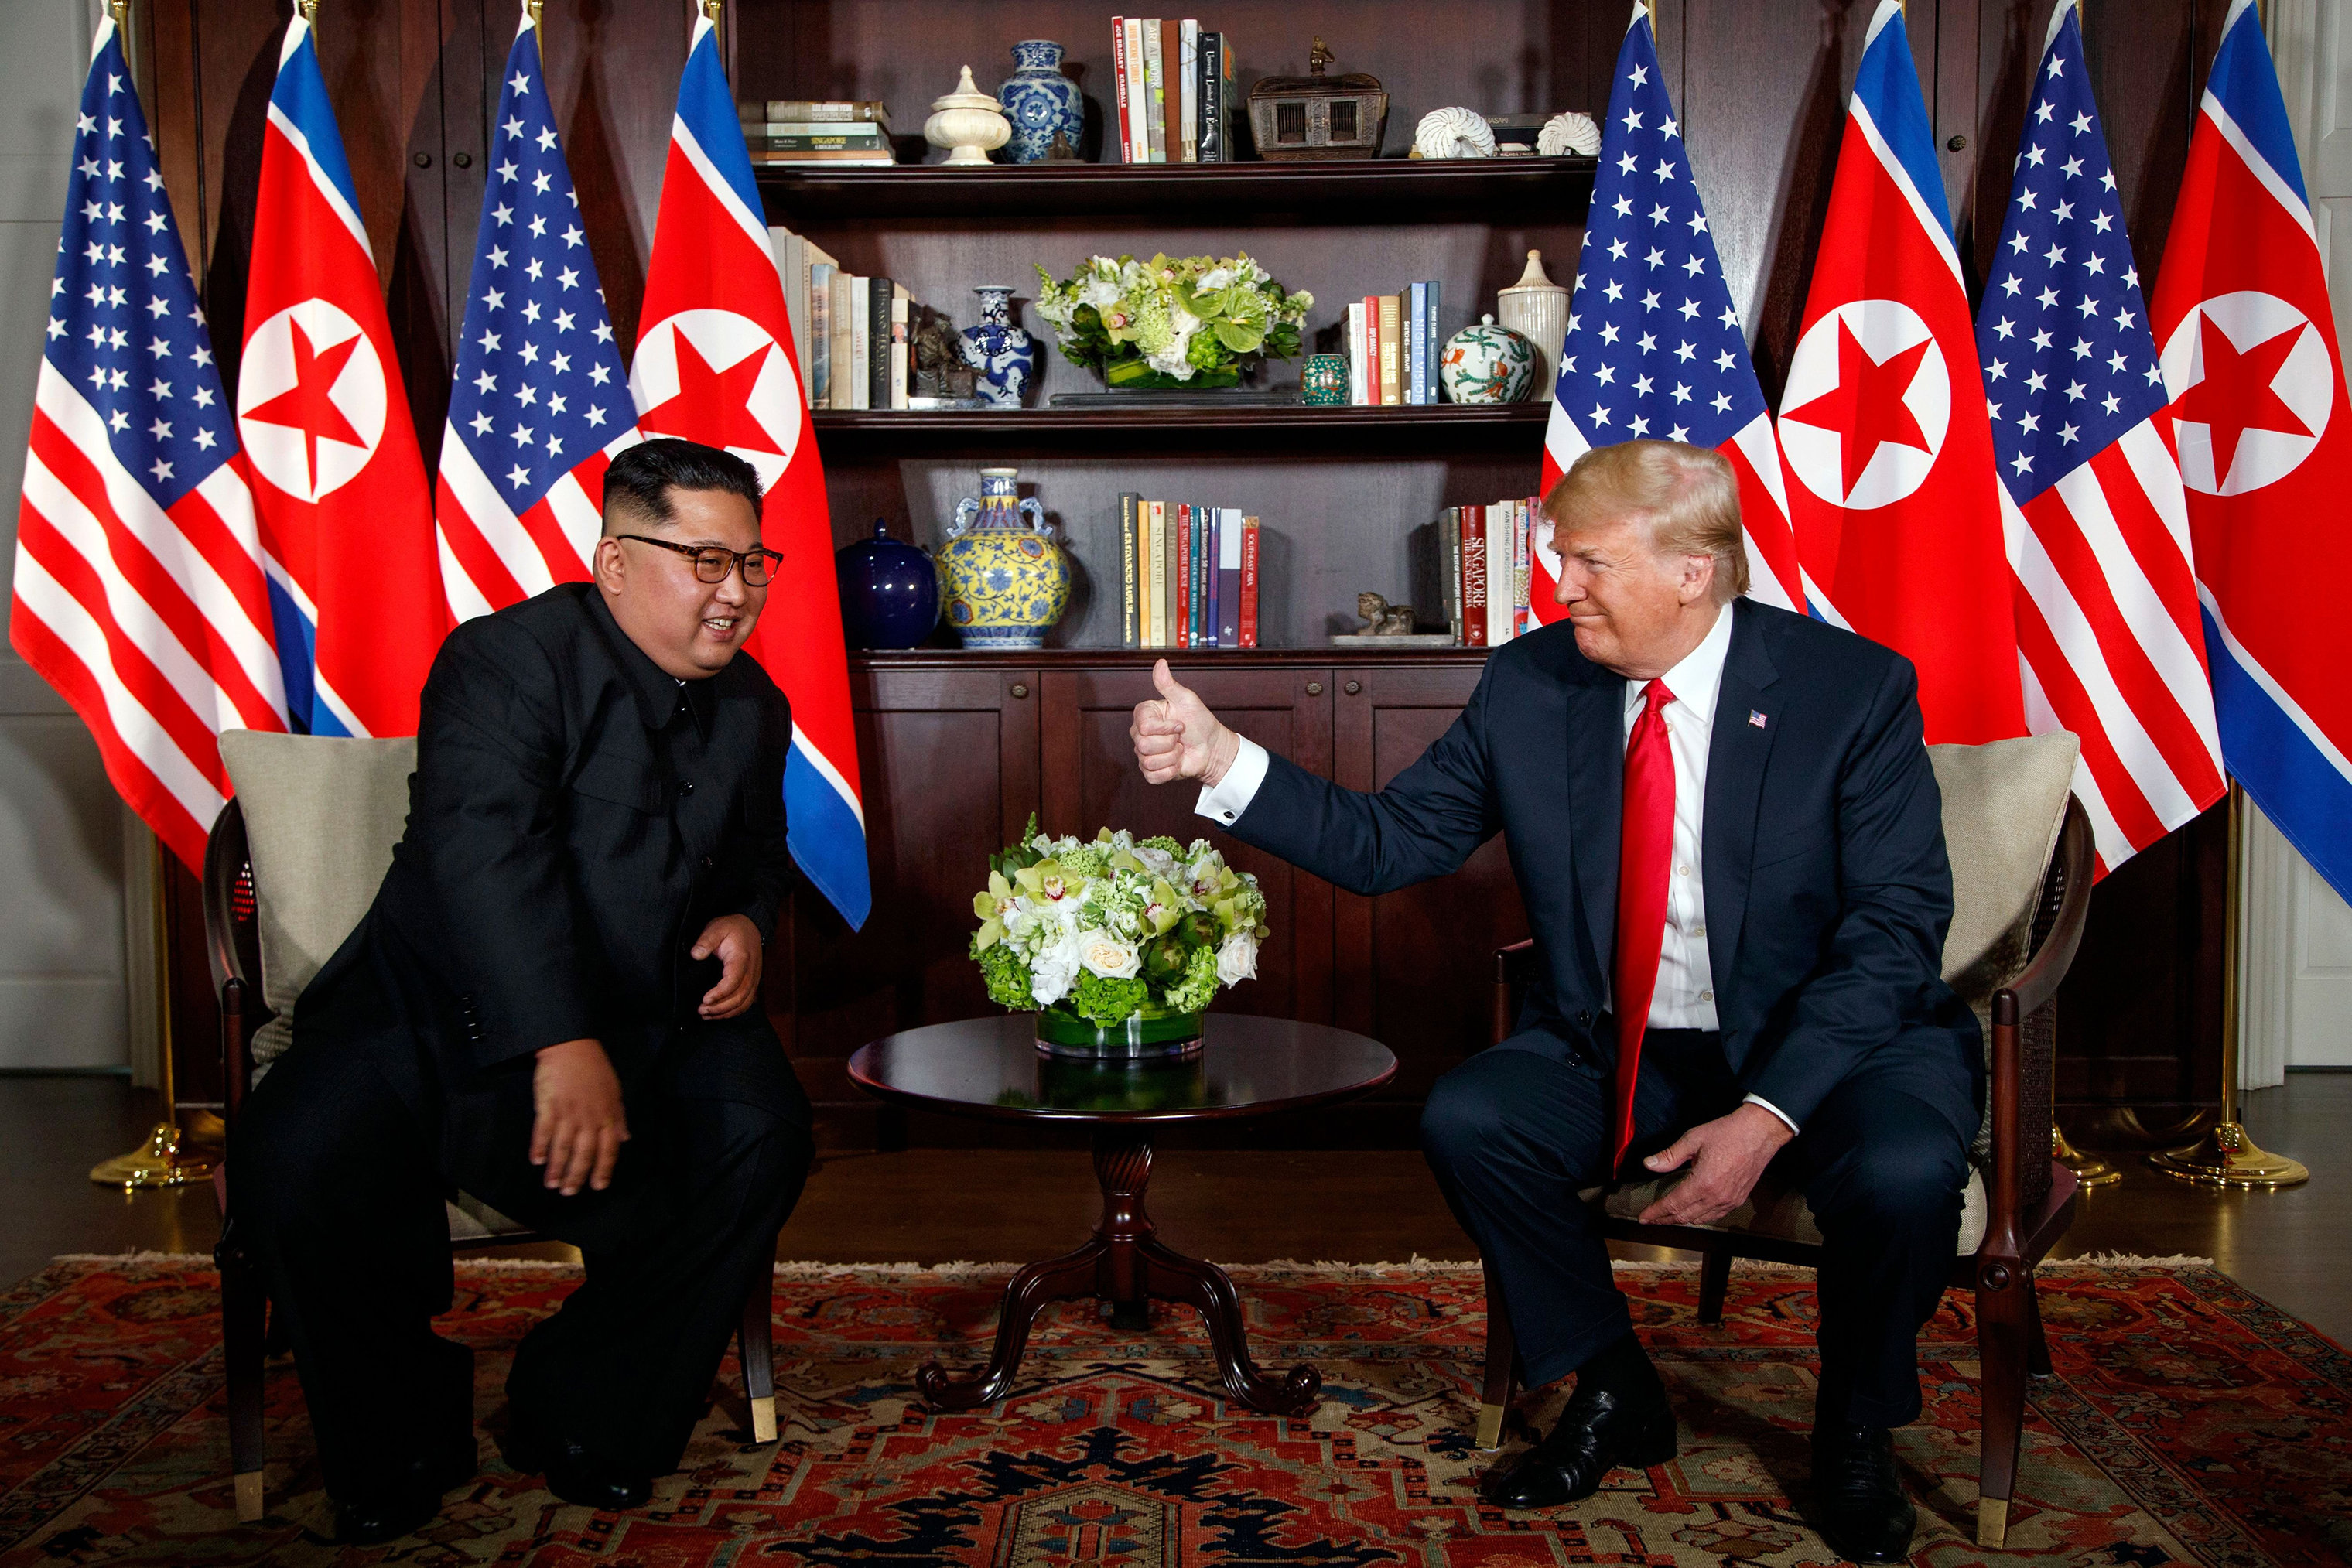 President Trump gives Kim a thumbs up during their historic summit in Singapore on June 12, 2018.